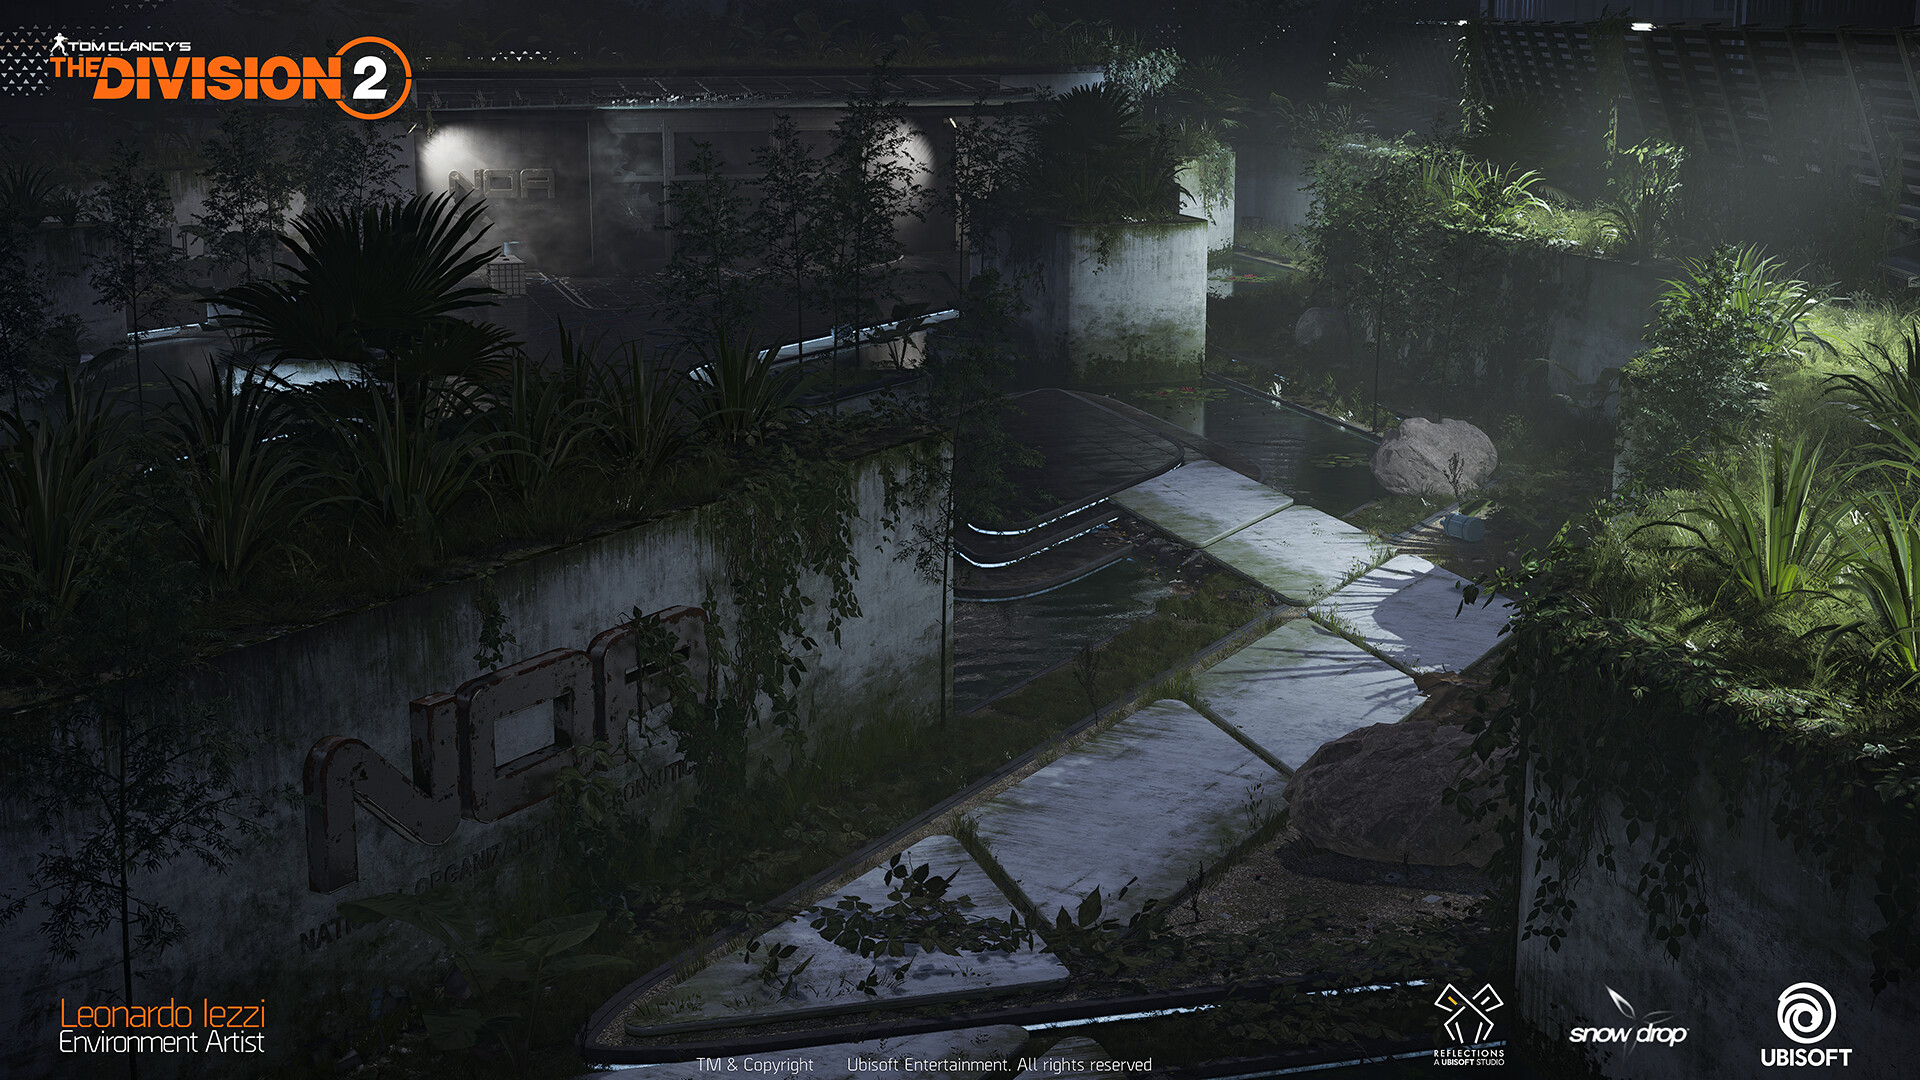 Leonardo iezzi leonardo iezzi the division 2 environment art 01 plaza 004